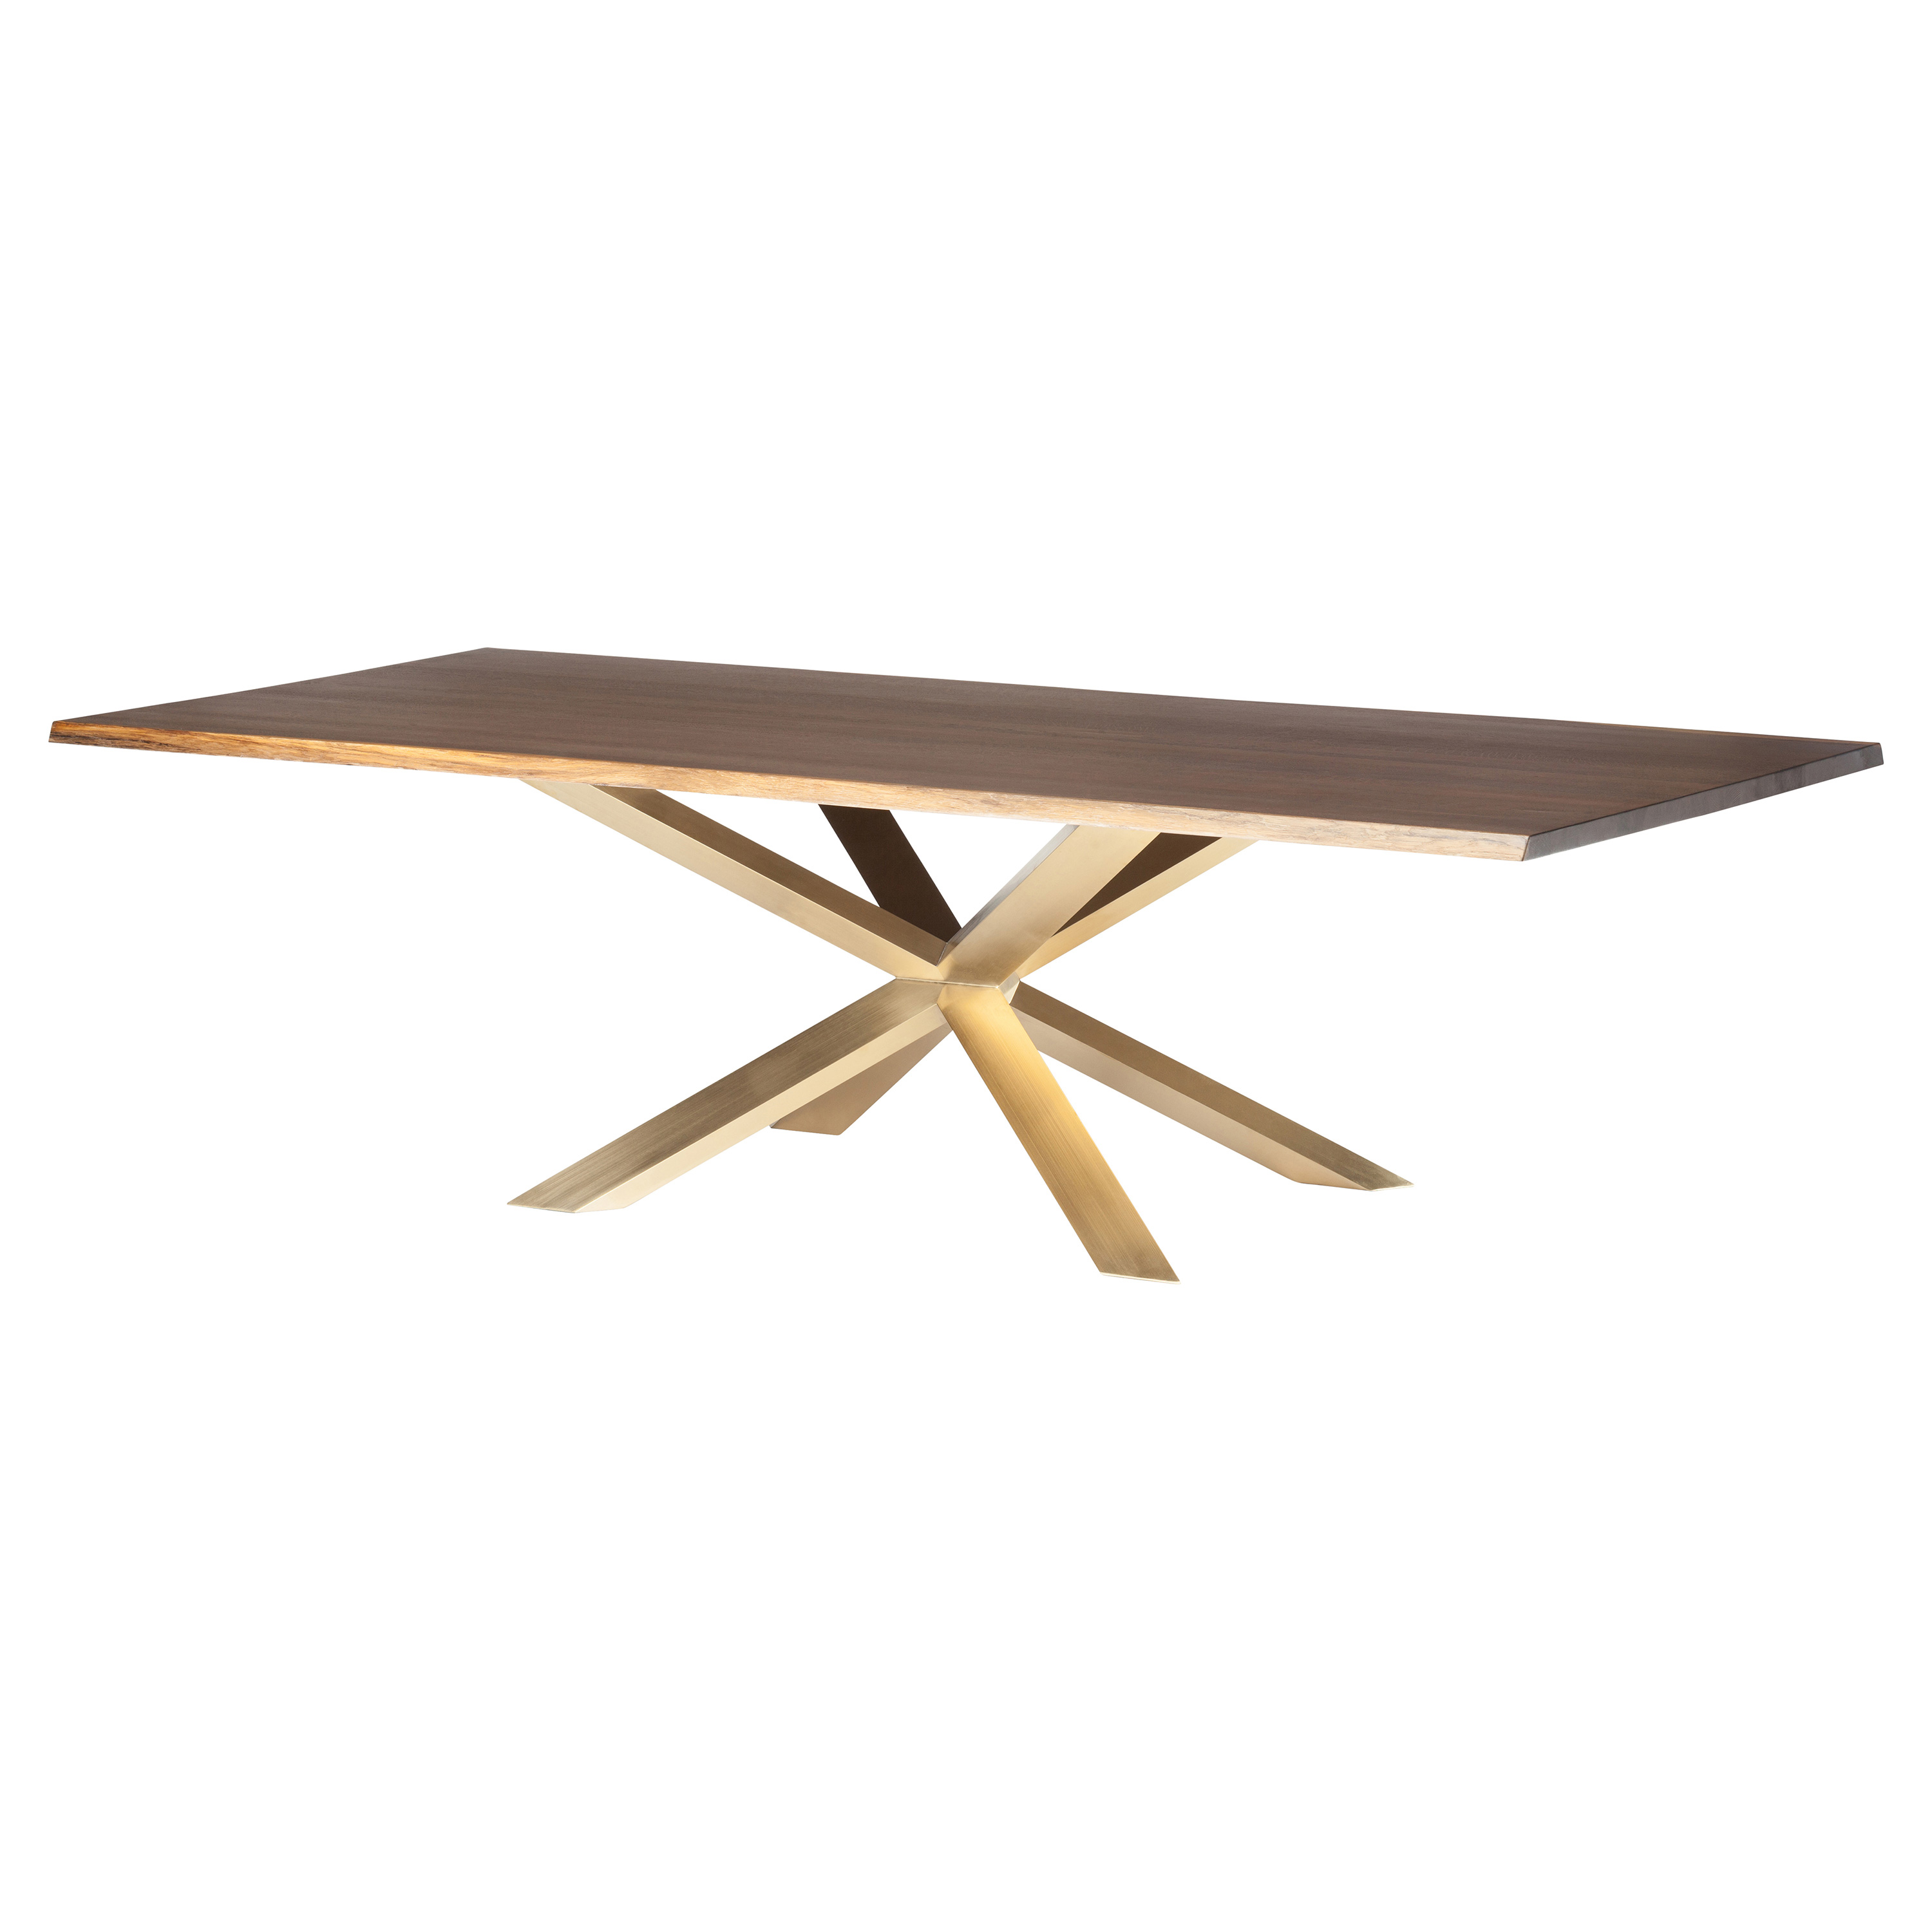 Prudence Modern Classic Oak Top Gold Dining Table - 112W